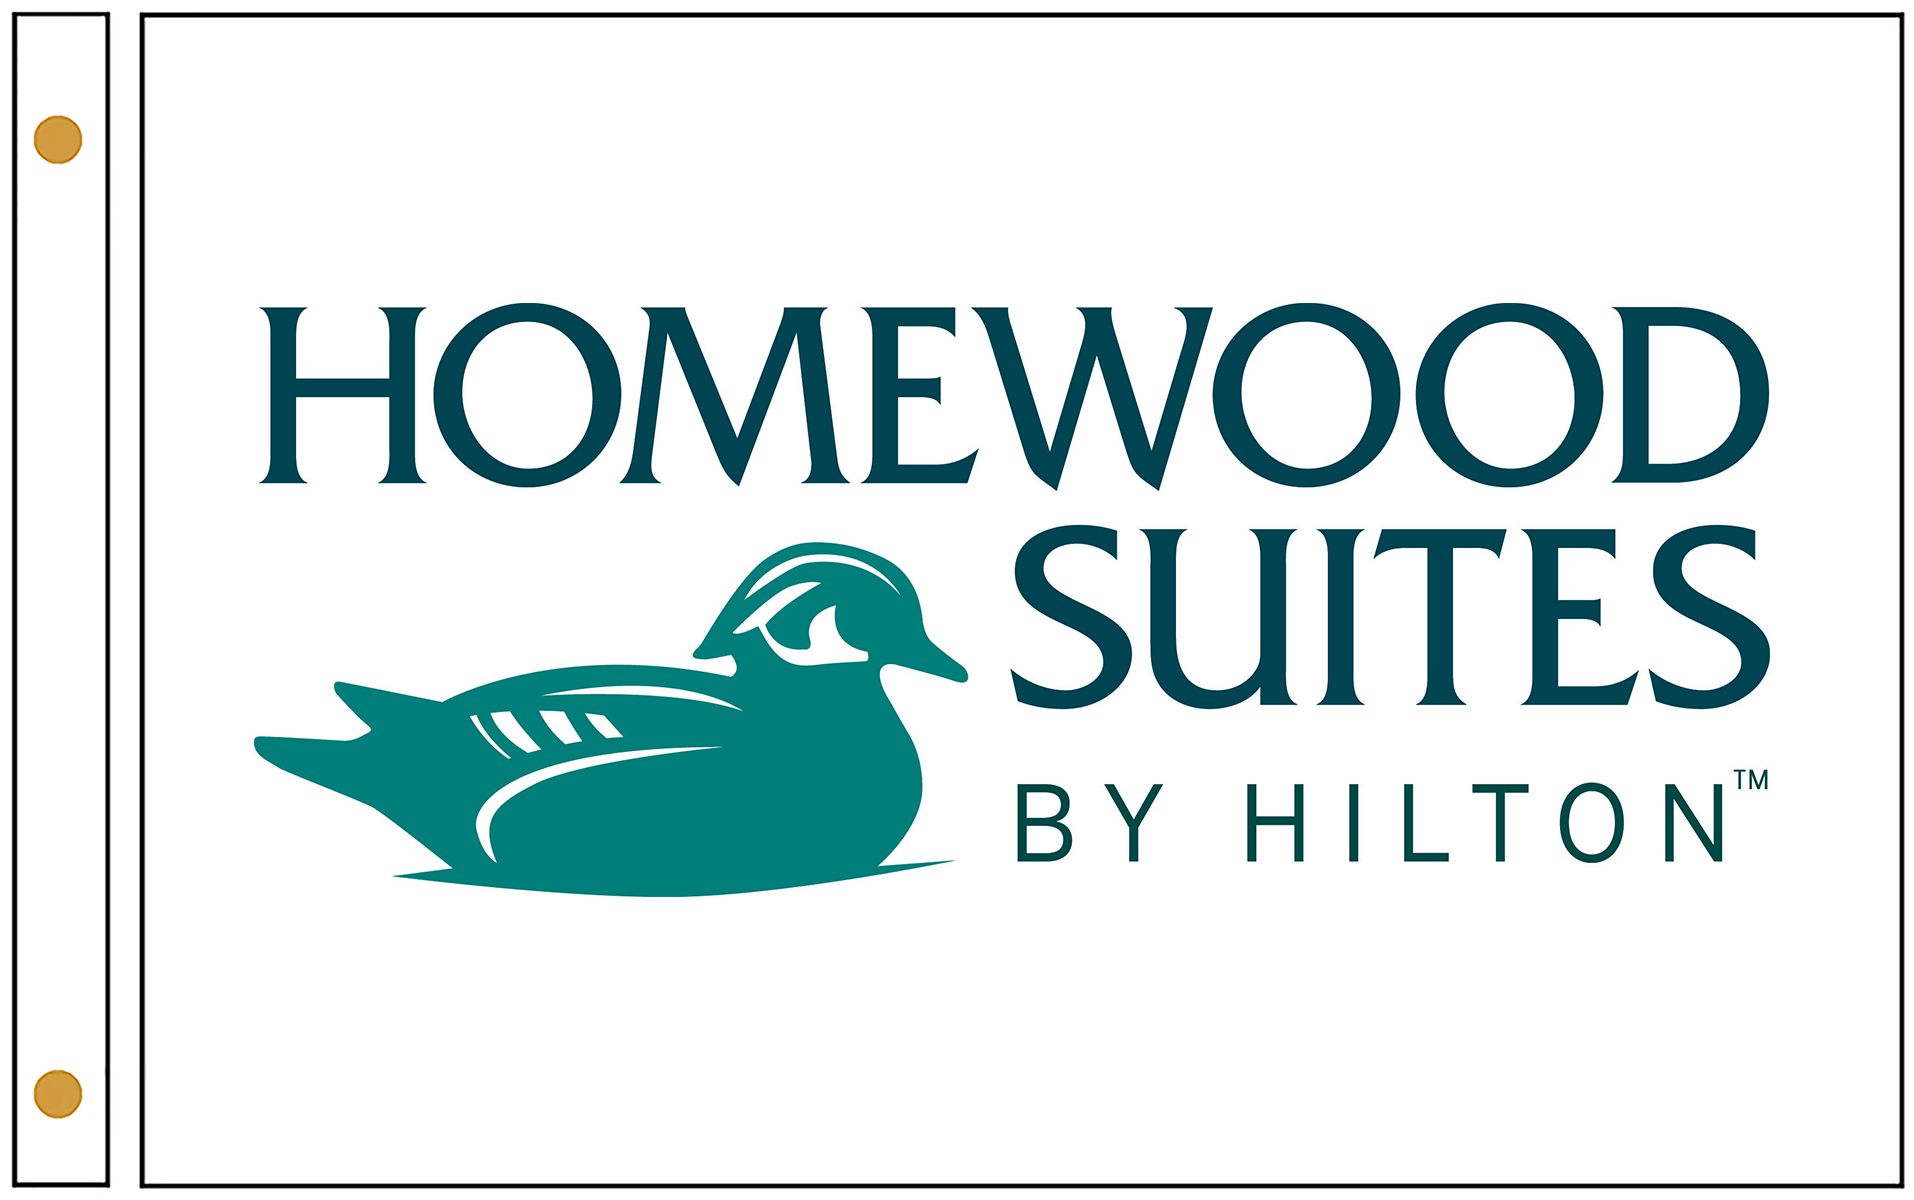 Hilton Homewood Suites Hotel Flags